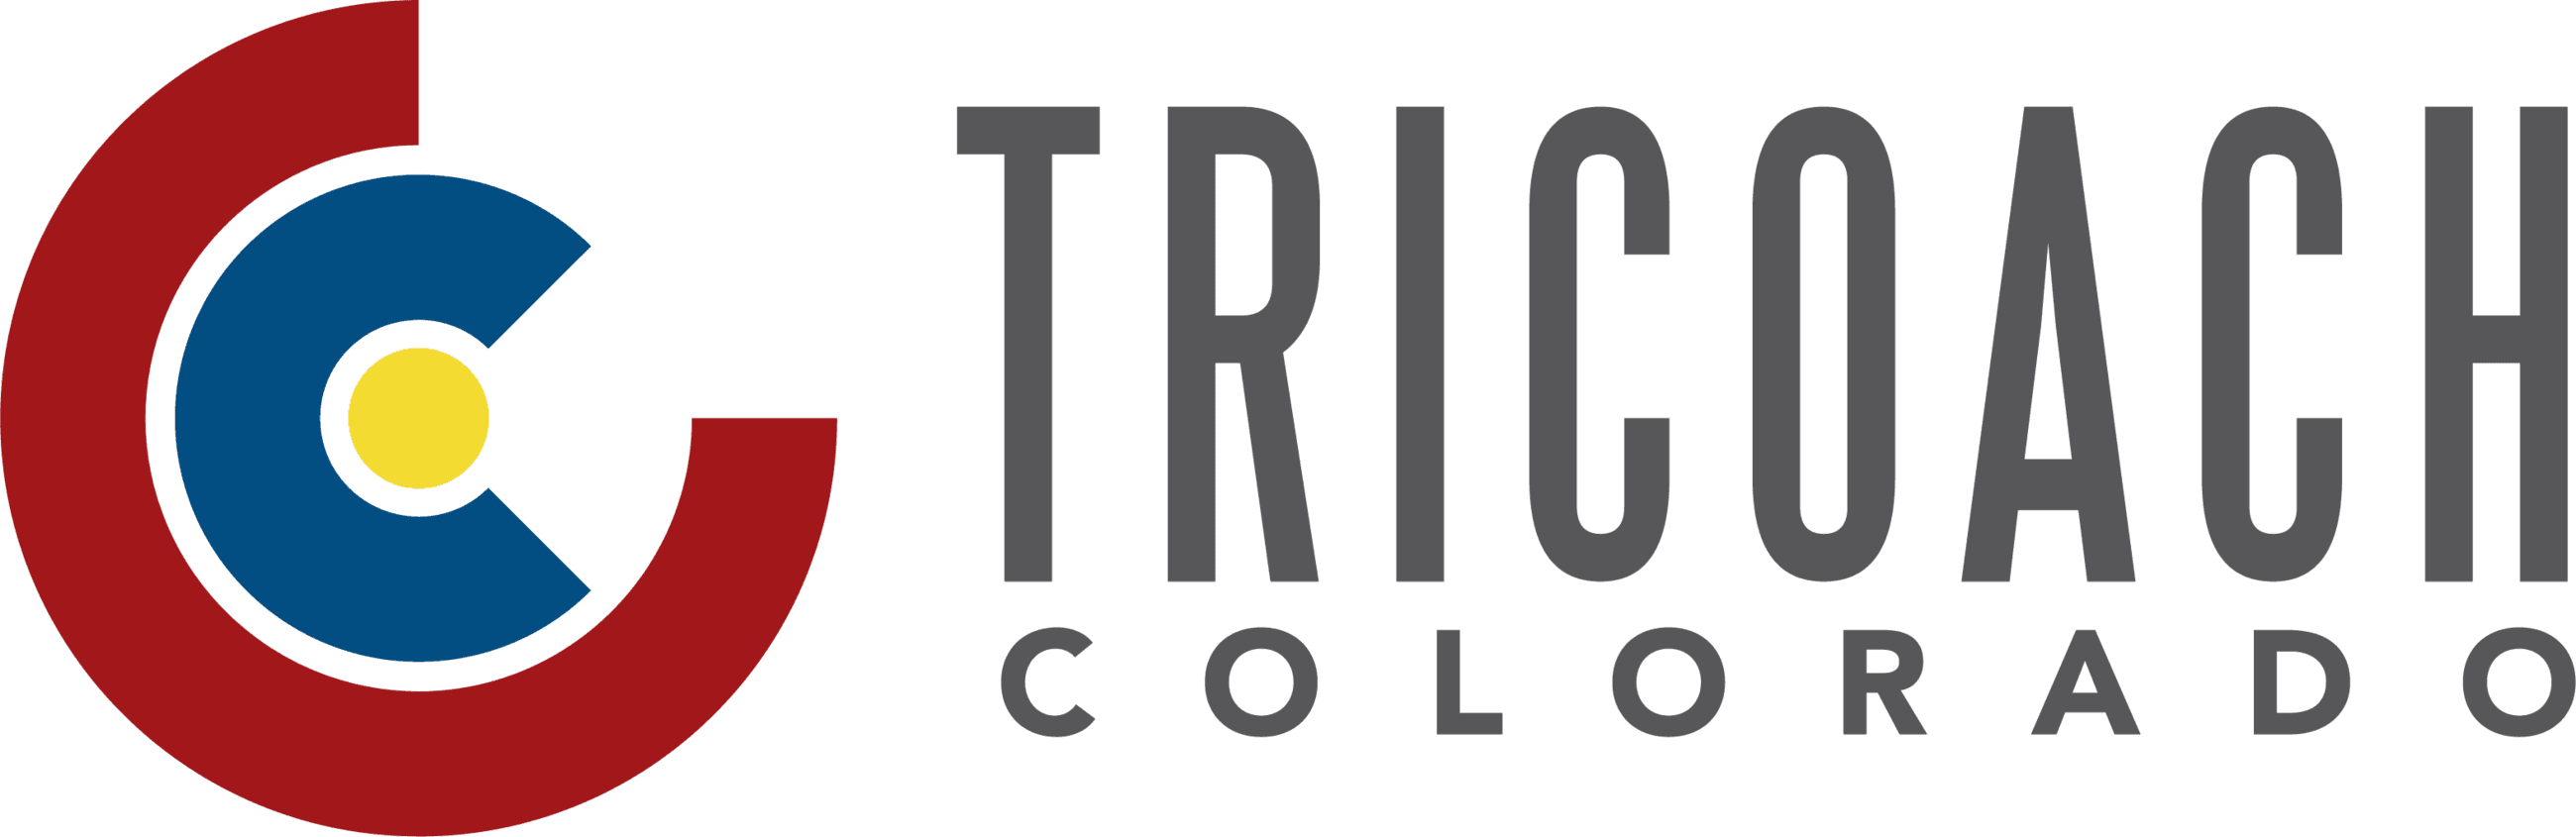 TRICOACH Colorado Logo